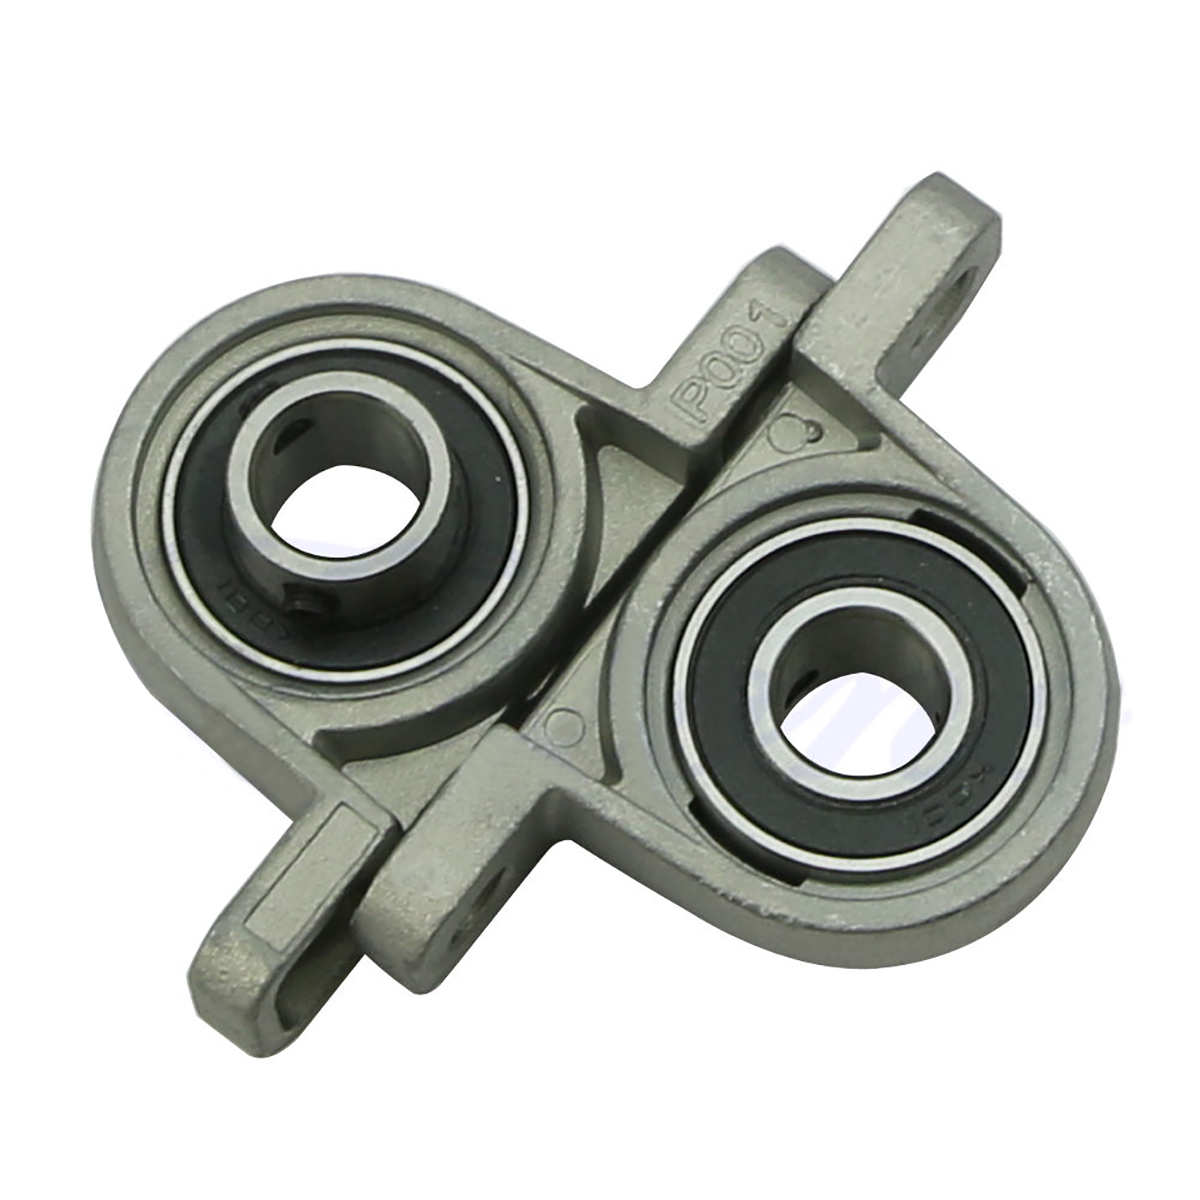 2pcs KP001 Bearing Housing 12mm Diameter Mayitr Well-adapted Zinc Alloy Ball Bearing Shaft Pillow Block Mounted Support 2pcs precision kp001 bearing shaft 12mm diameter zinc alloy pillow block mounted support ball bearings housing roller mayitr